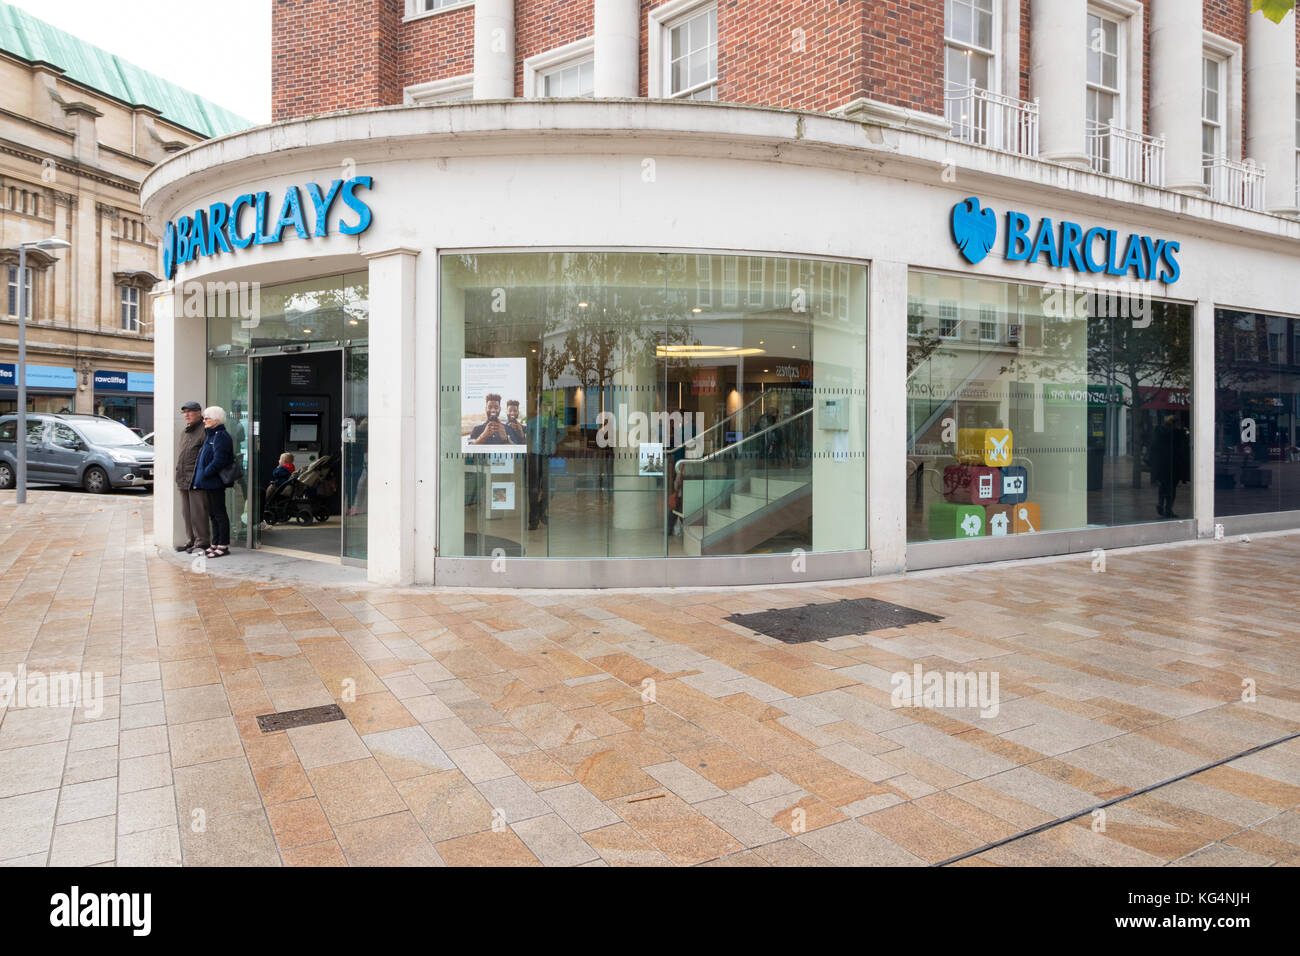 Barclays Coventry City Centre